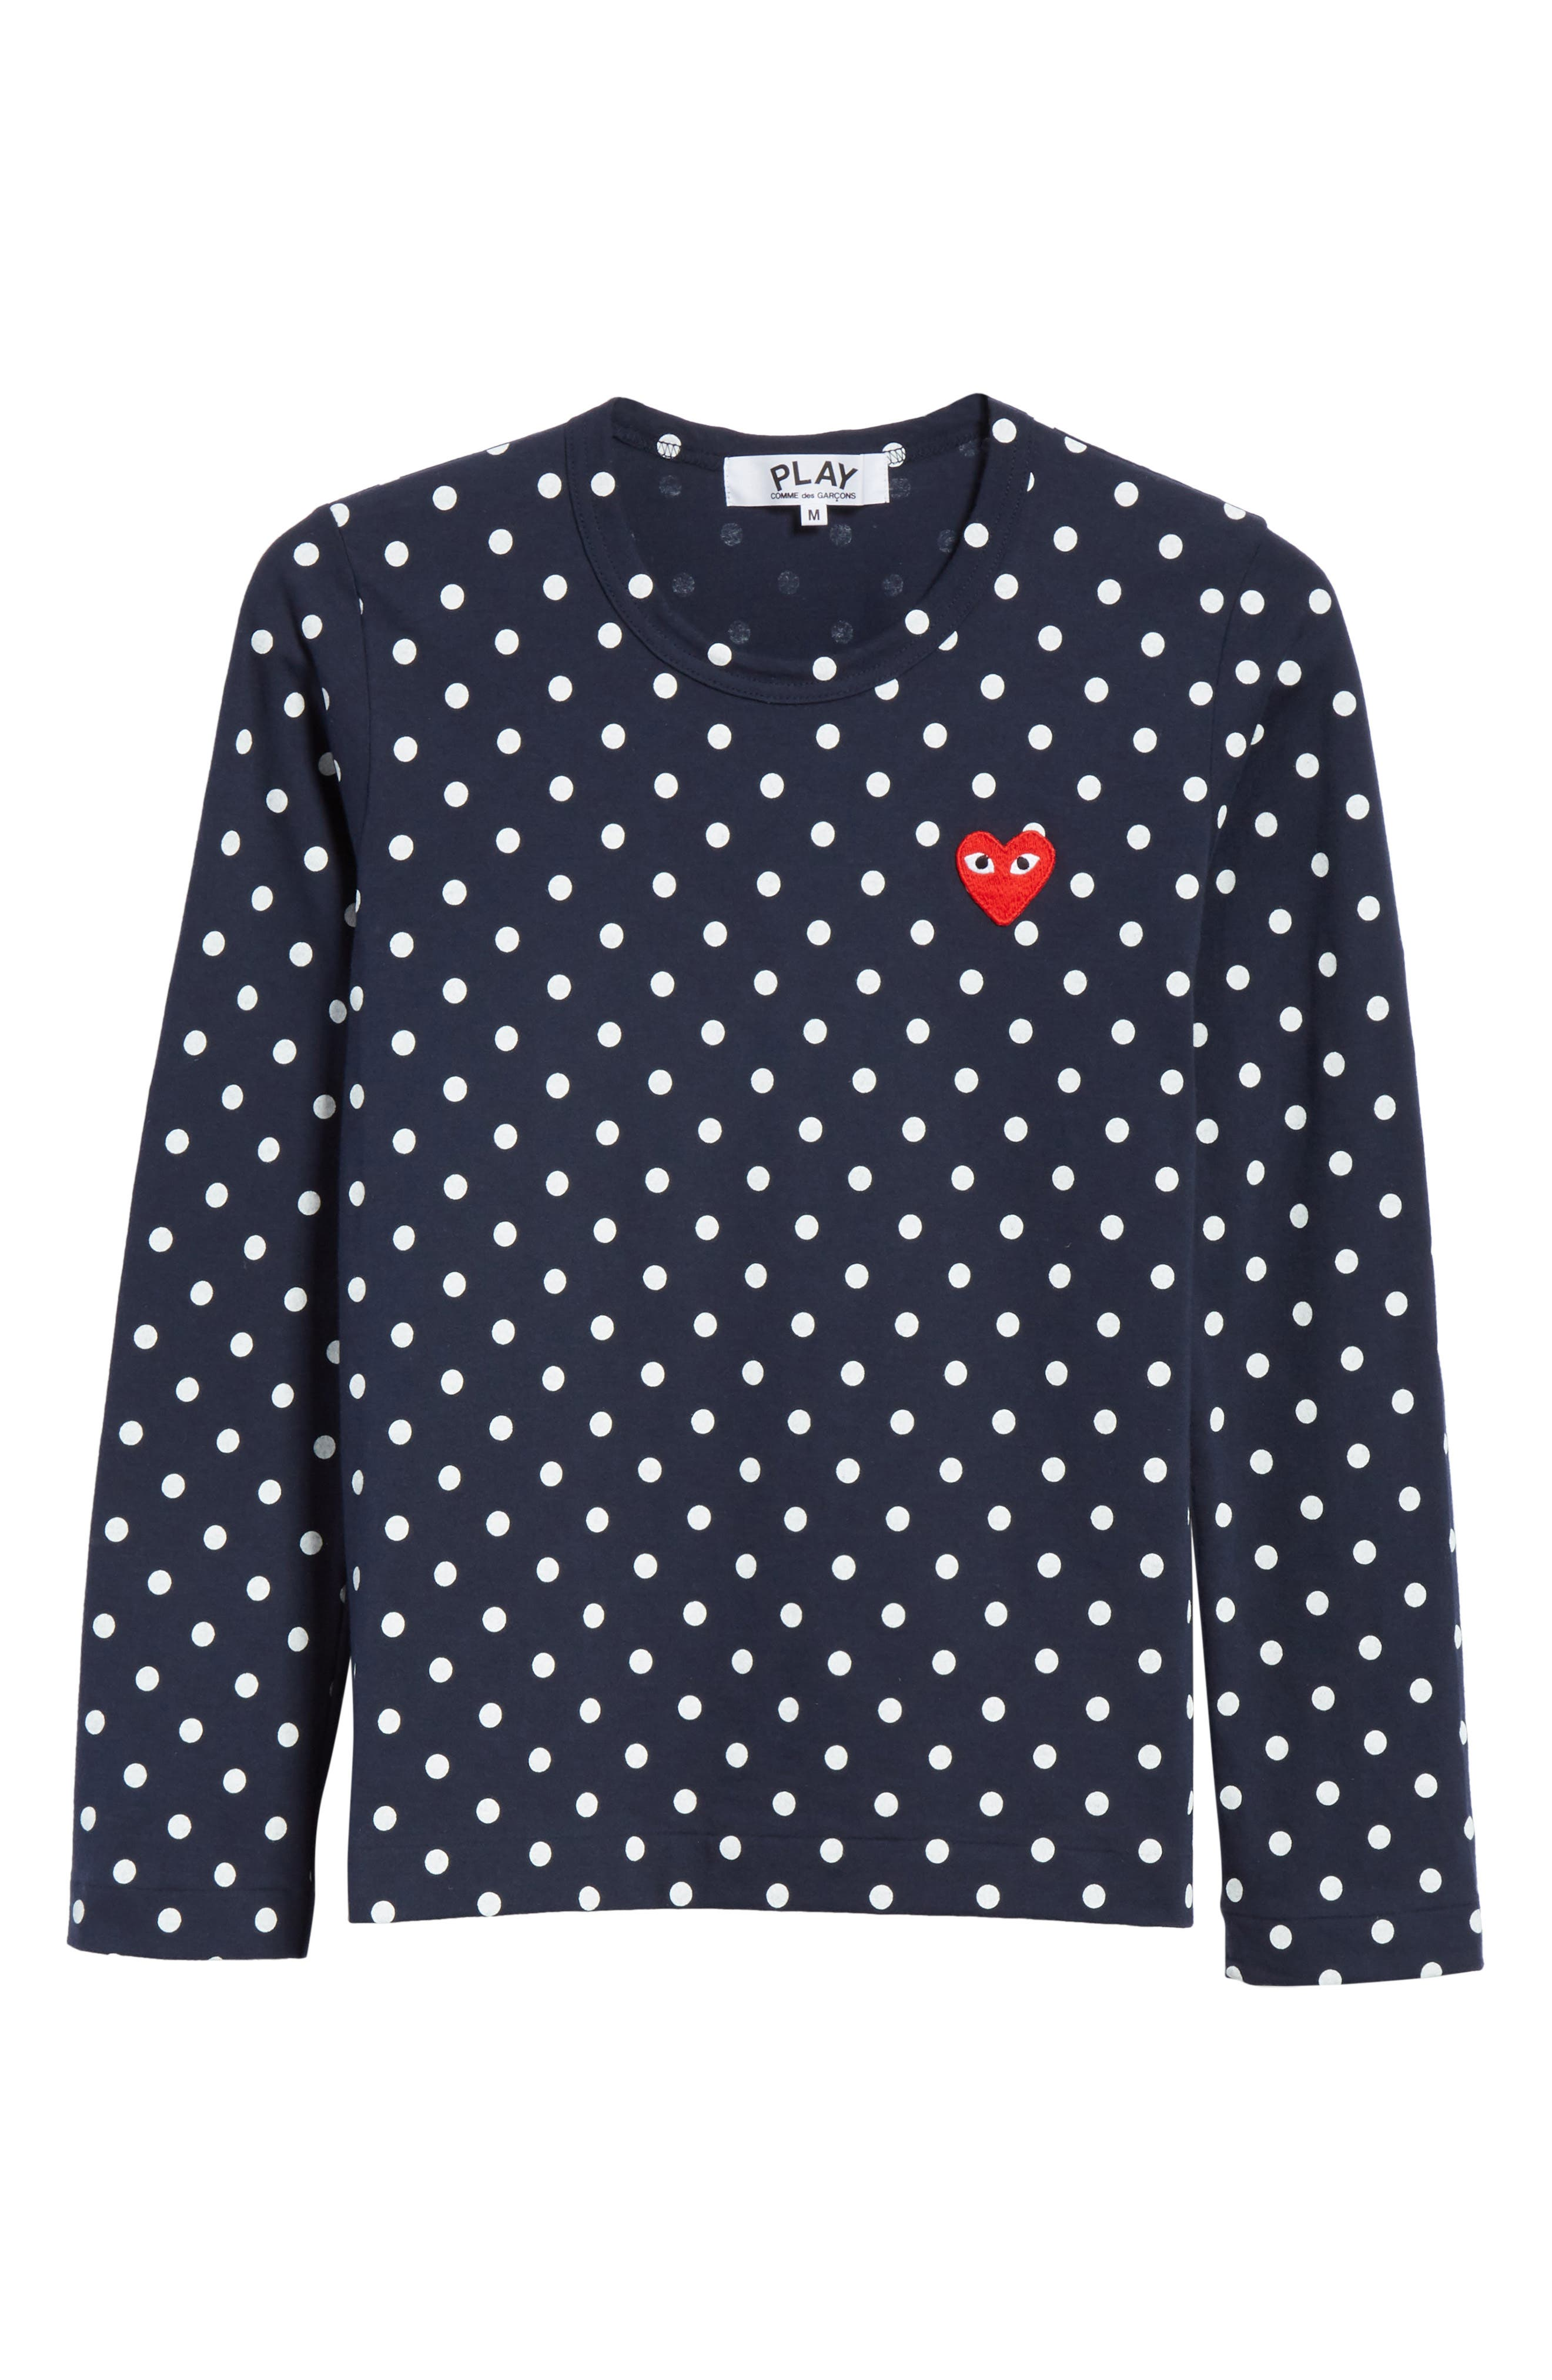 Comme des Garçons PLAY Red Heart Polka Dot Tee,                             Alternate thumbnail 6, color,                             Navy/ White